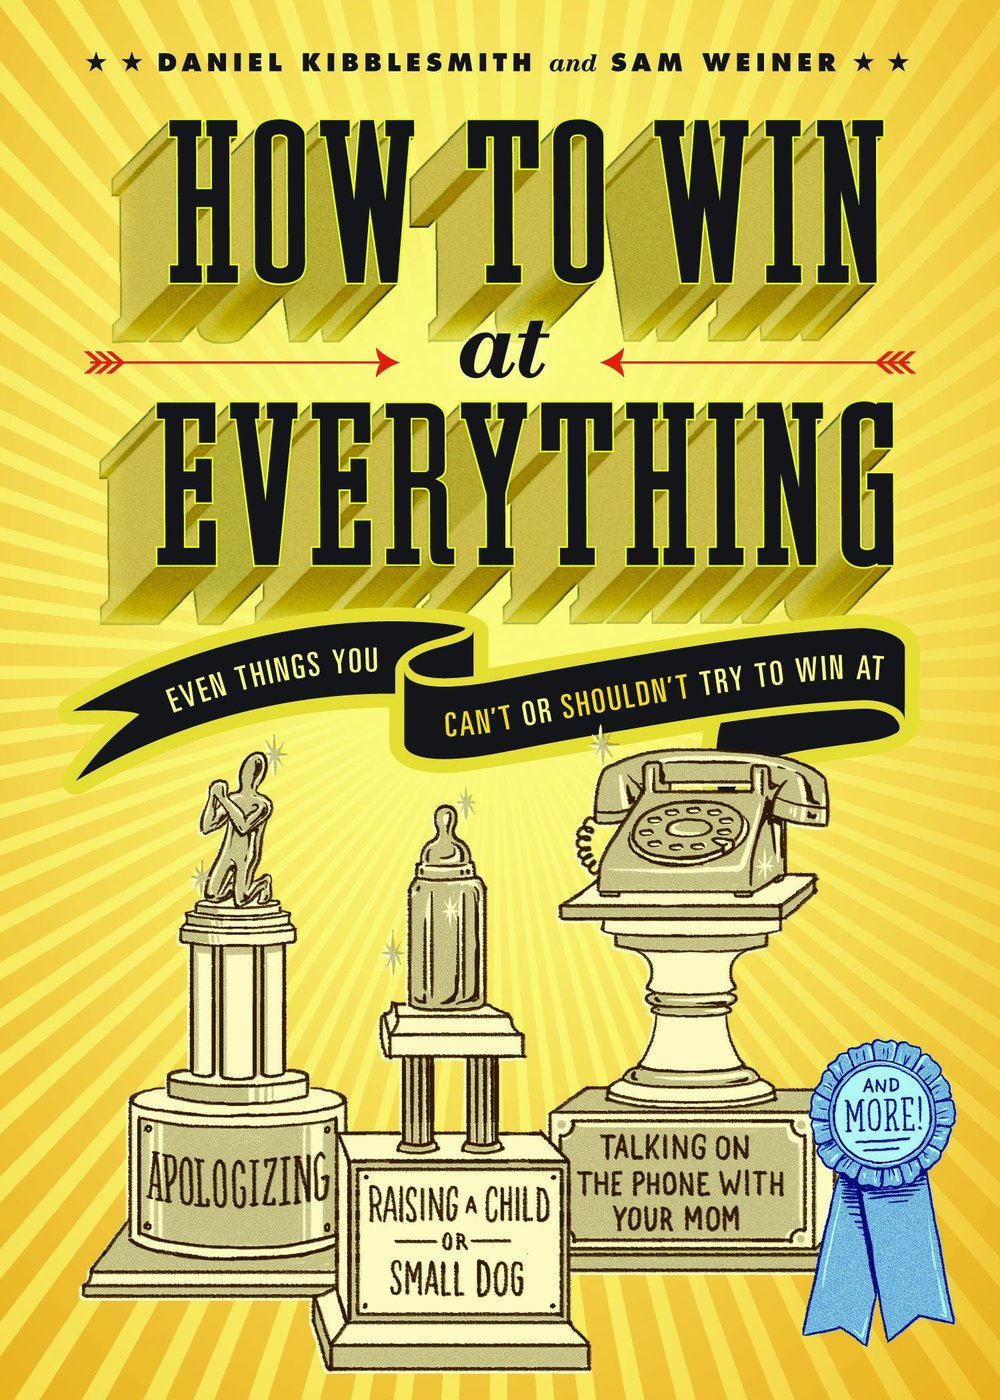 How To Win At Everything (2013) By Daniel Kibblesmith & Sam Weiner - Even Things You Can't Or Shouldn't Try To Win At